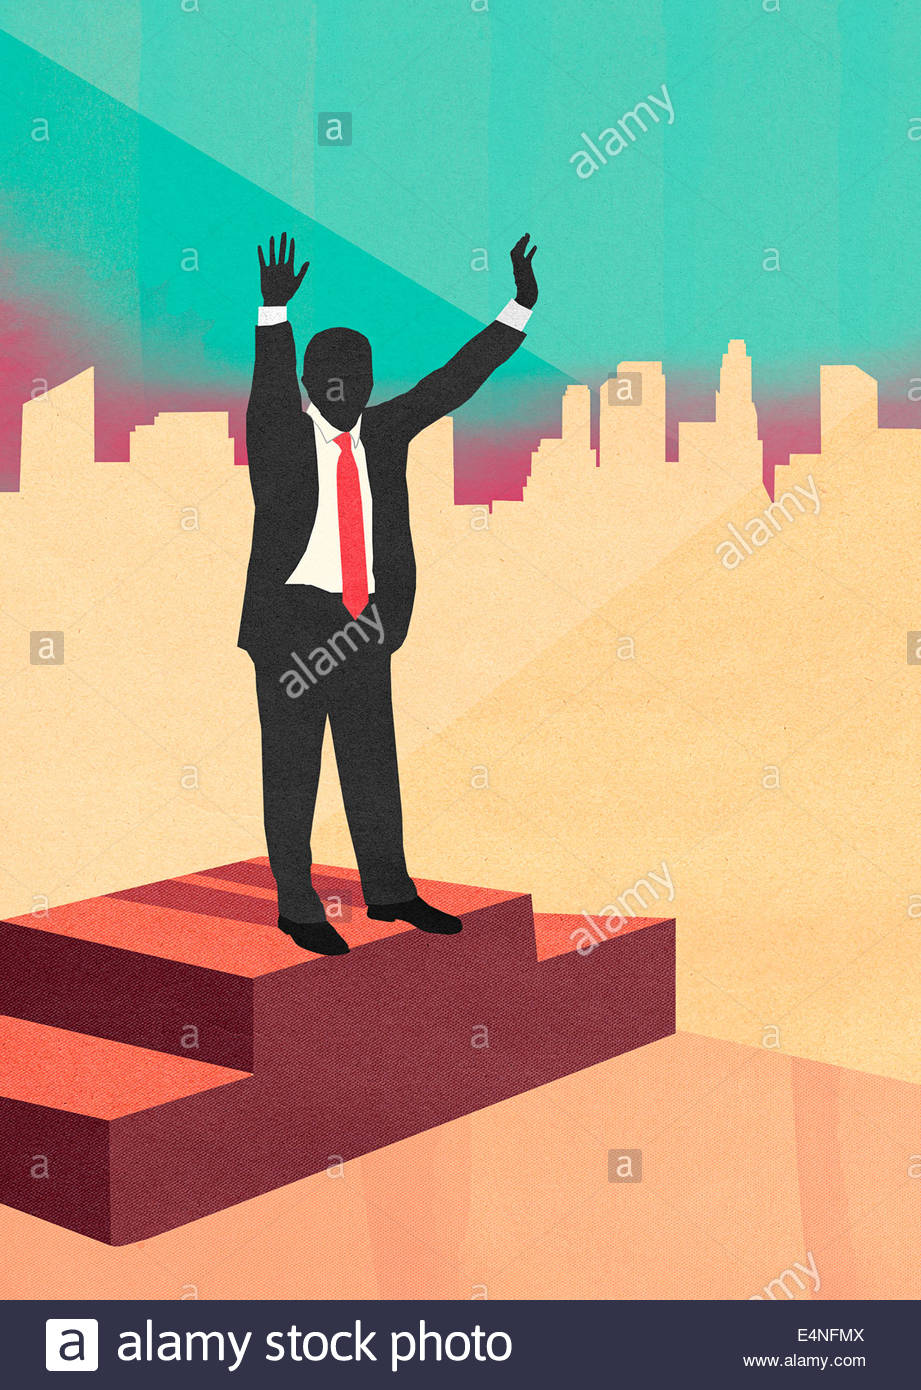 Businessman celebrating victory with arms raised on podium - Stock Image